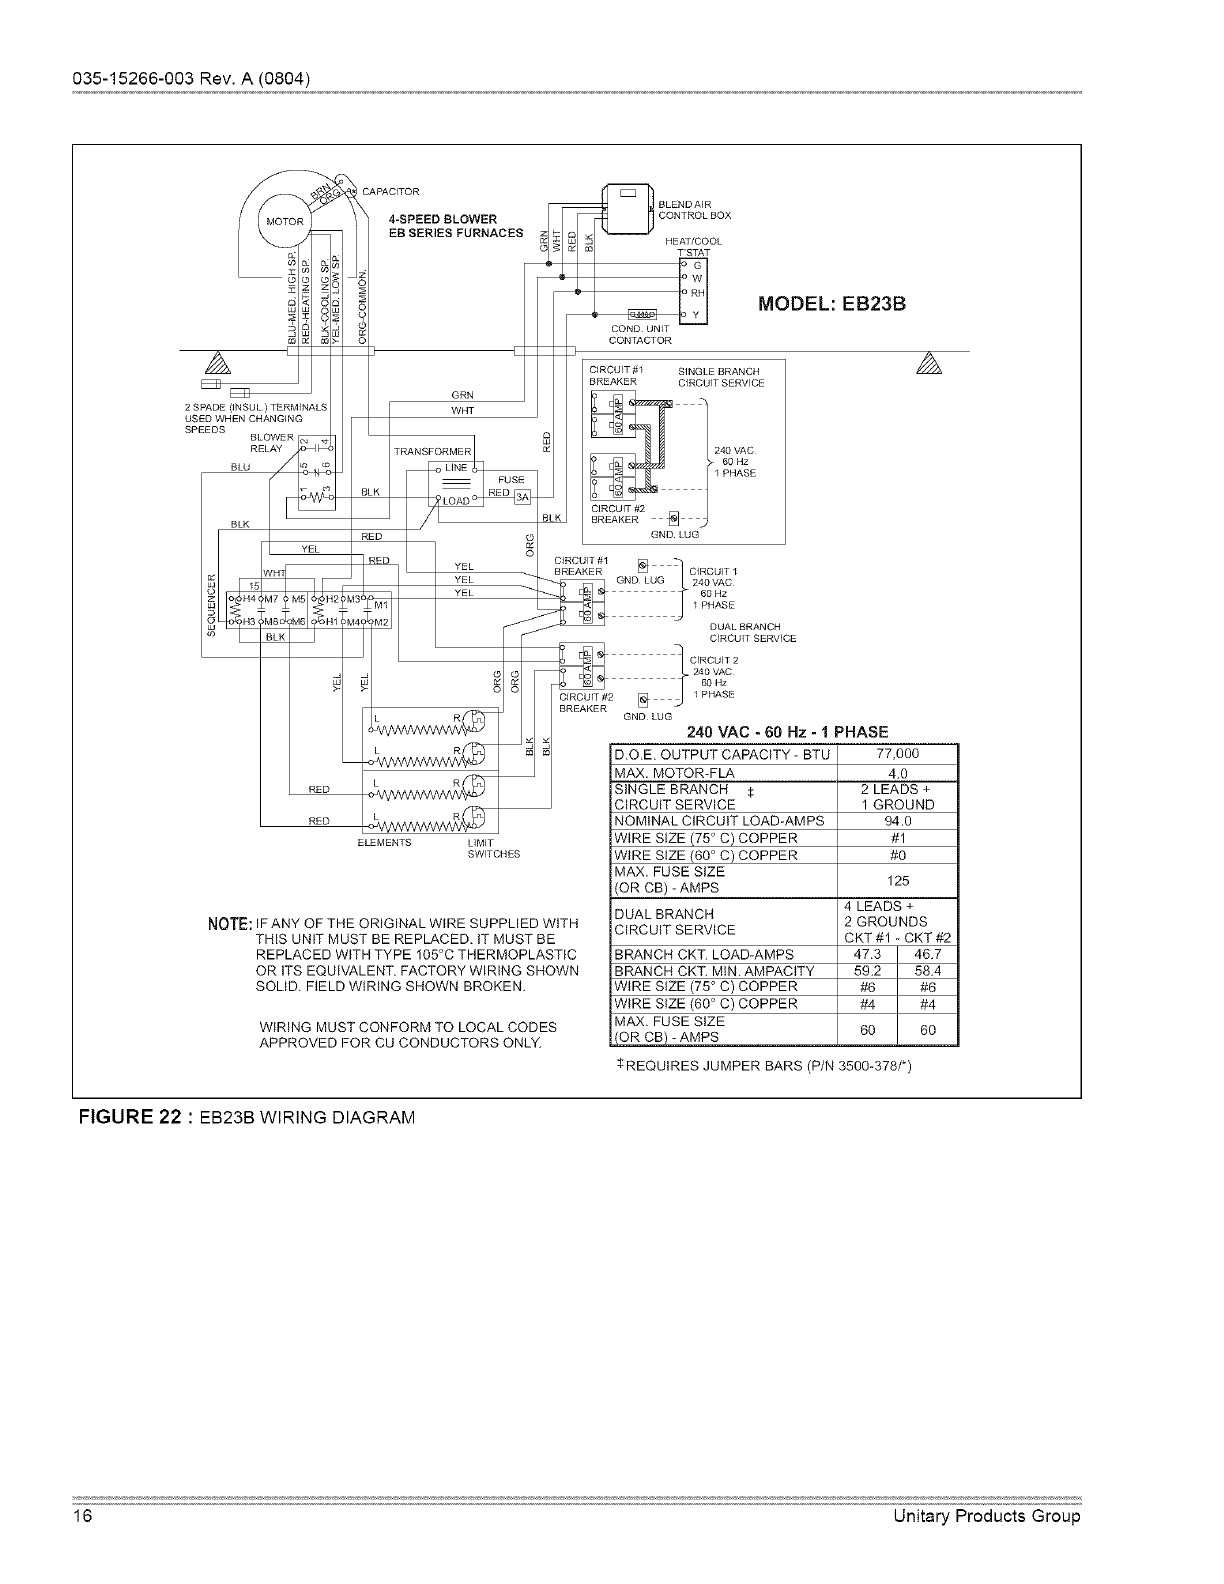 Coleman Electric Furnace Wiring Schematic